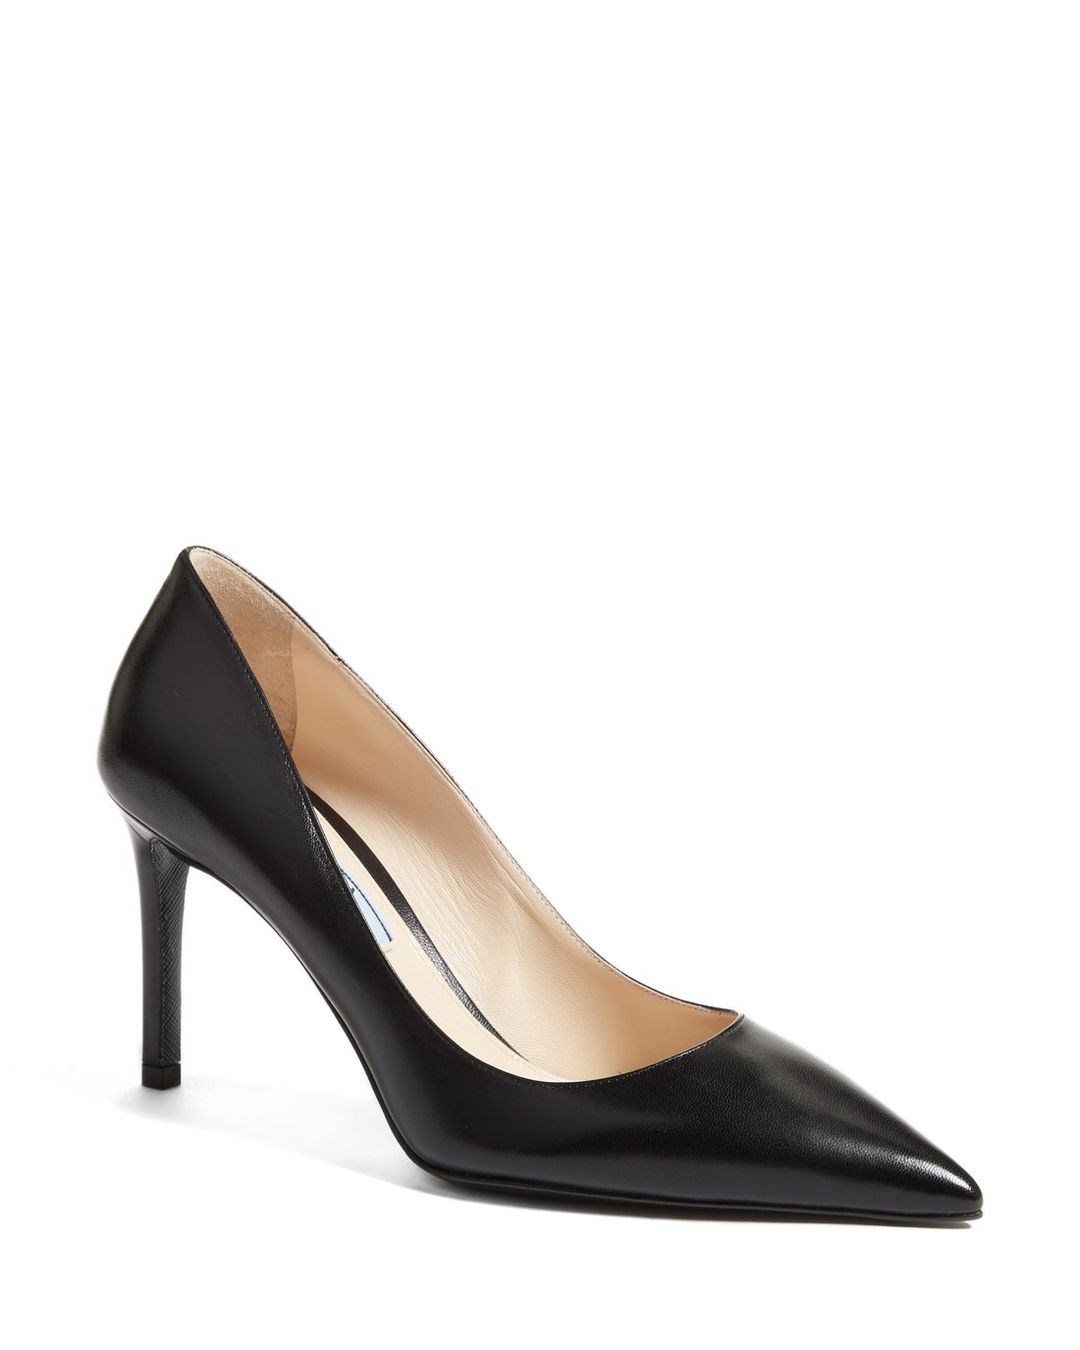 ad4128c28f46 Prada Pointy Toe Pump 85mm. 381. evening · office · heels